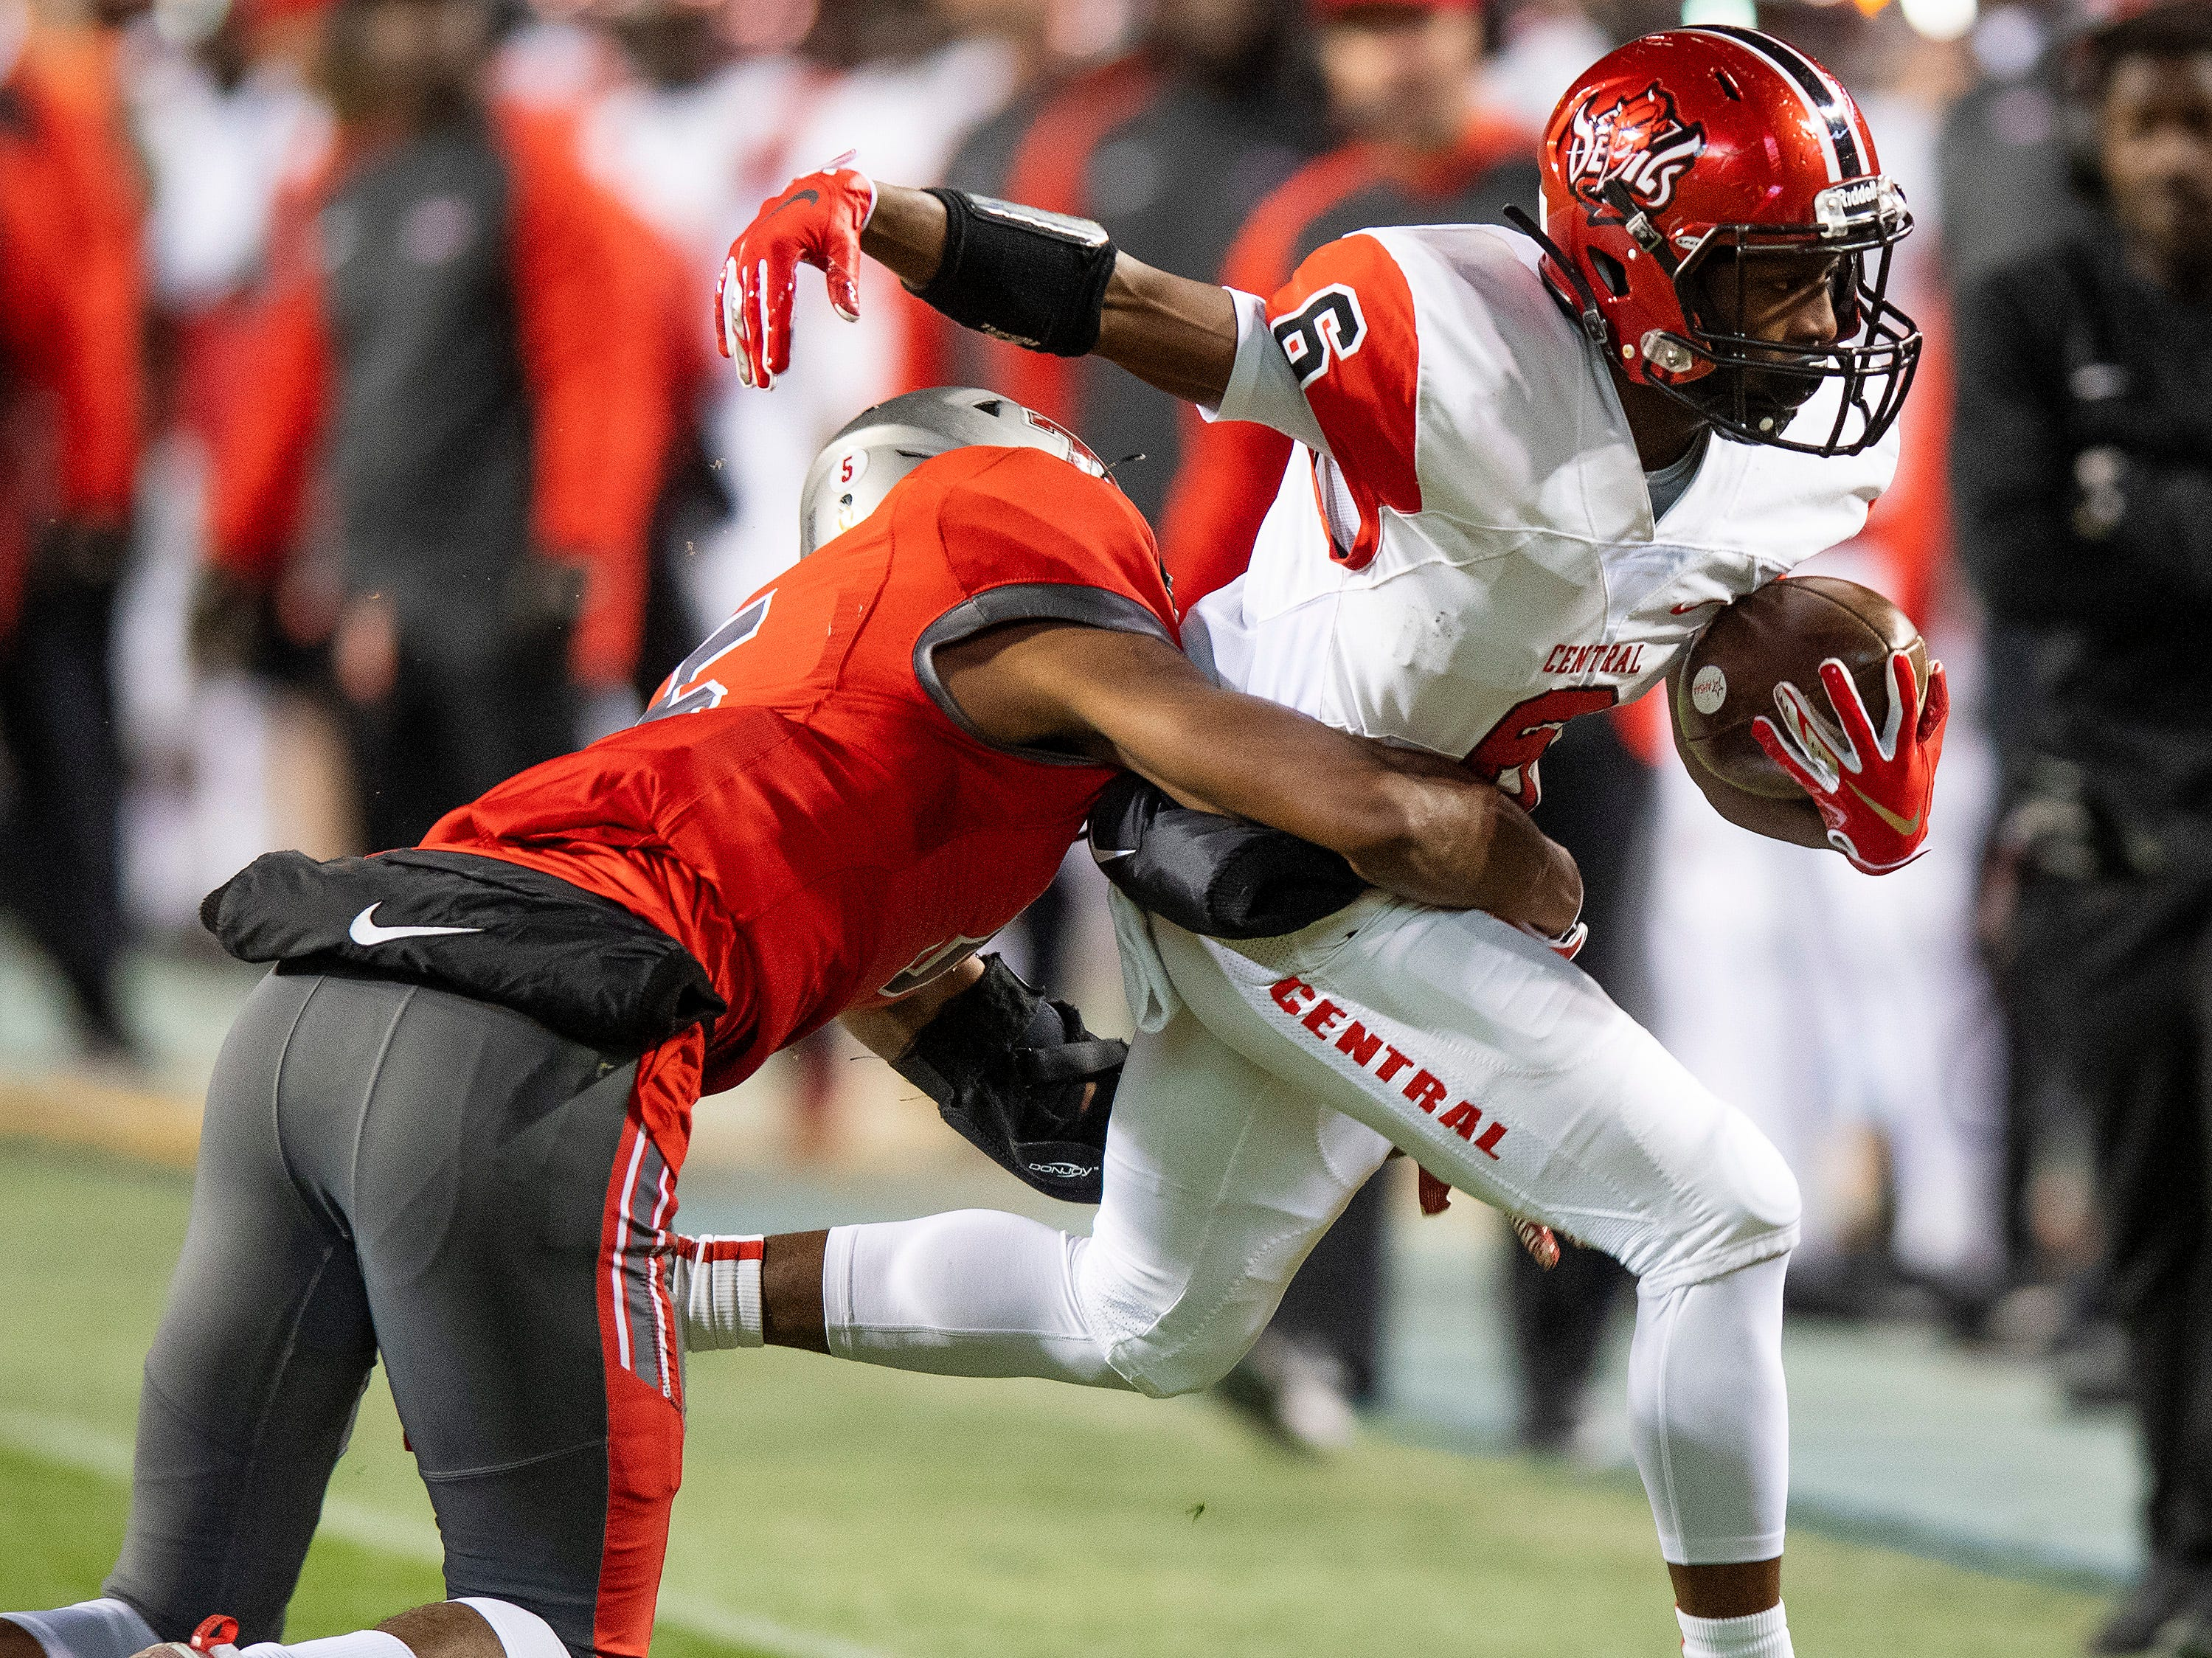 Central-Phenix City's Marsh Robert is forced out of bounds by Thompson's Nathan Riddle during the AHSAA Class 7A State Championship Football Game at Jordan Hare Stadium in Auburn, Ala., on Wednesday evening December 5, 2018.